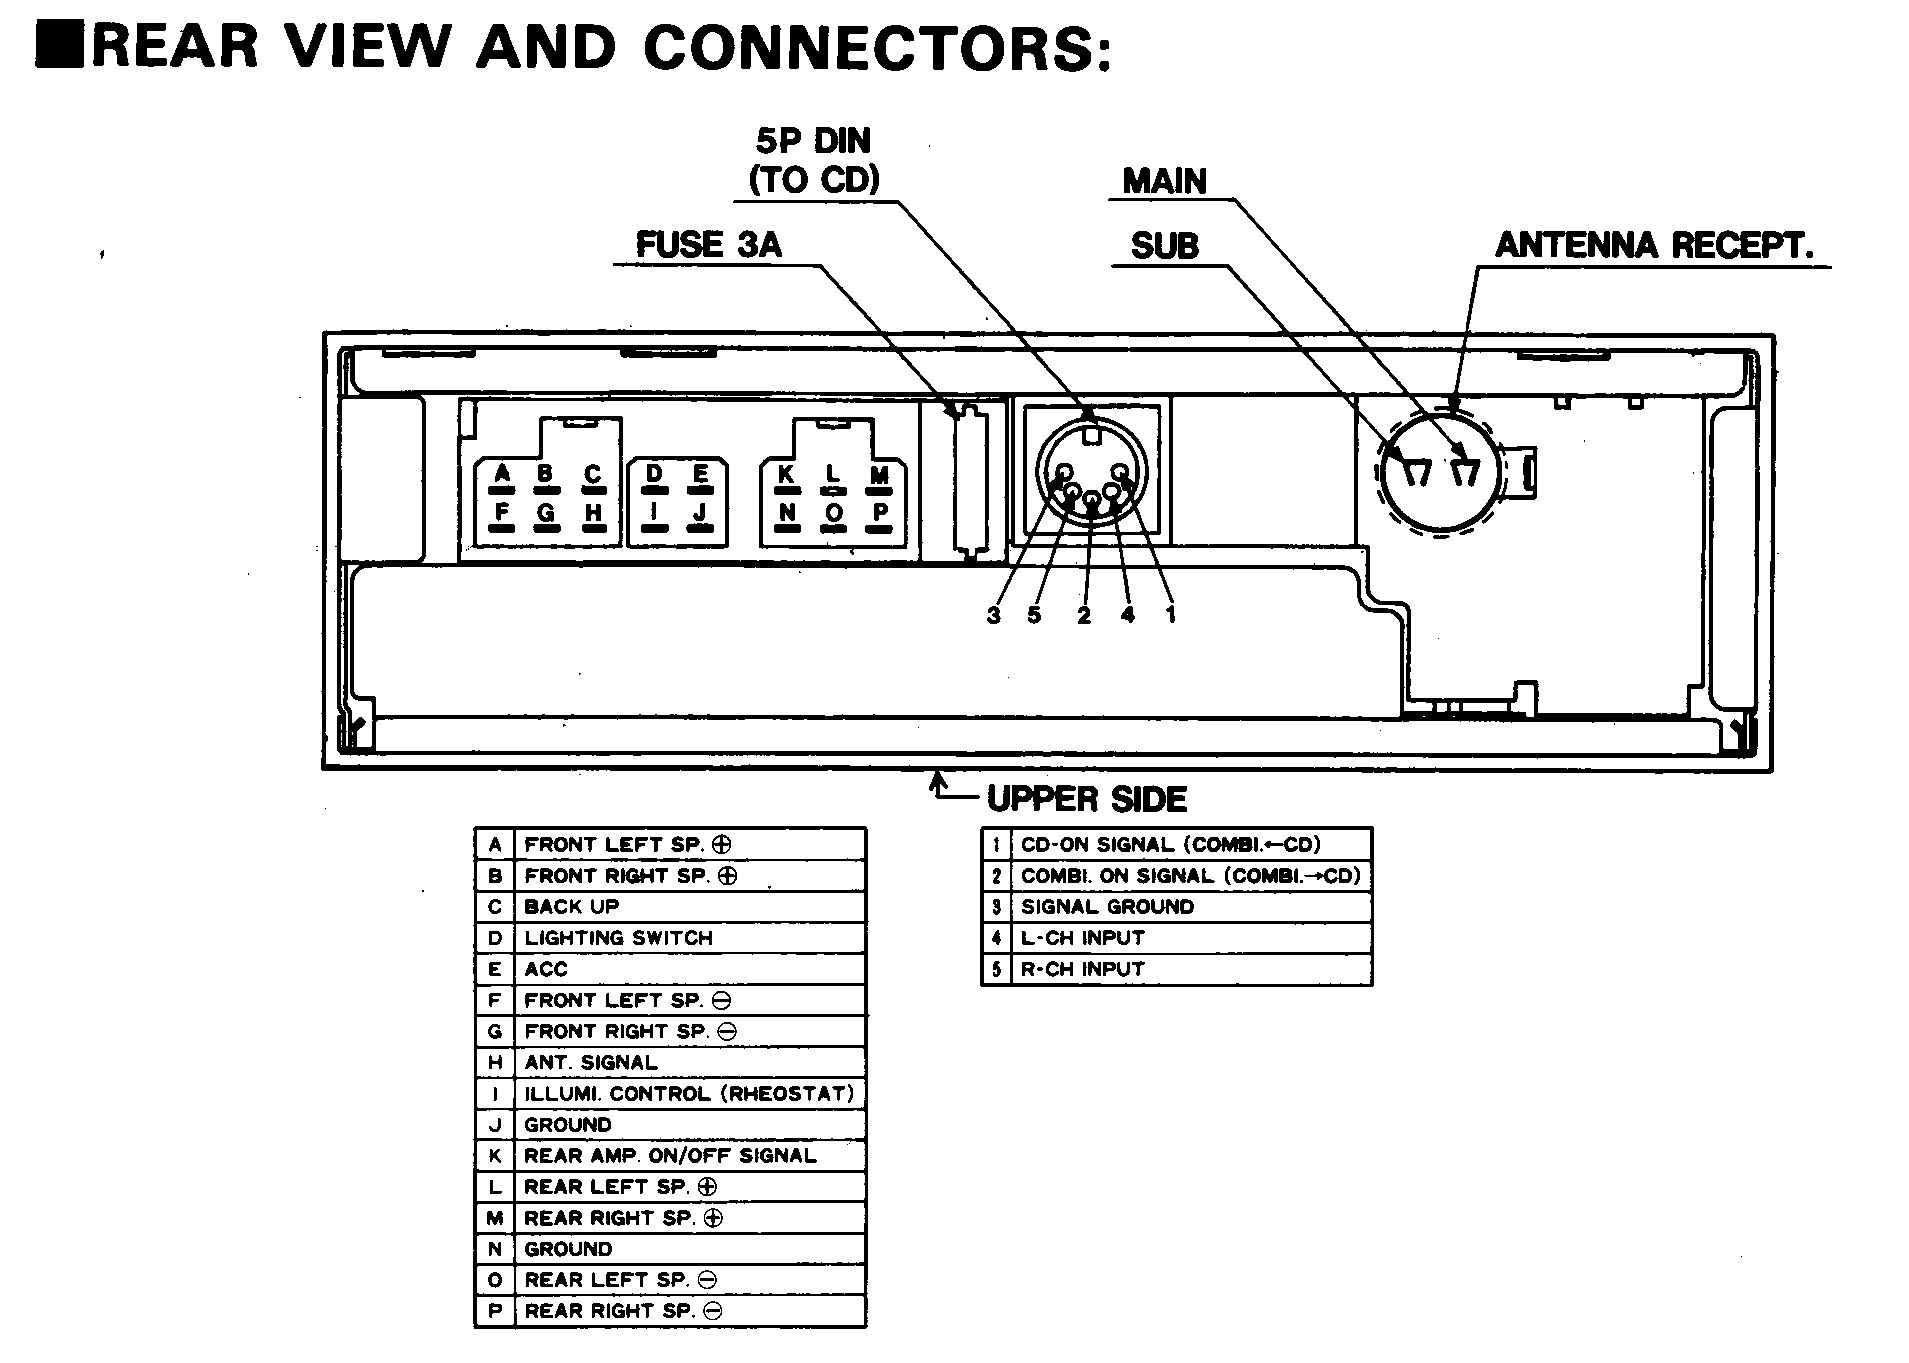 Nissan Bose Car Stereo Wiring | Wiring Diagram | Article Review on bose audio cable, sony stereo wire harness diagram, bose computer speakers, pioneer deh 150mp instalation diagram, bose bluetooth speakers, bose ie2, audio amplifier schematic diagram, 2003 nissan maxima stereo wiring diagram, gmc envoy radio wiring diagram, home theater wiring diagram, sub and amp diagram, subwoofer and amp installation diagram, bose remote codes, mitsubishi car radio wiring diagram, radio wiring harness diagram, bose 321 setup diagram, stereo equalizer hook up diagram, 2003 silverado speaker wiring diagram, subwoofer wiring diagram, cadillac deville radio wiring diagram,